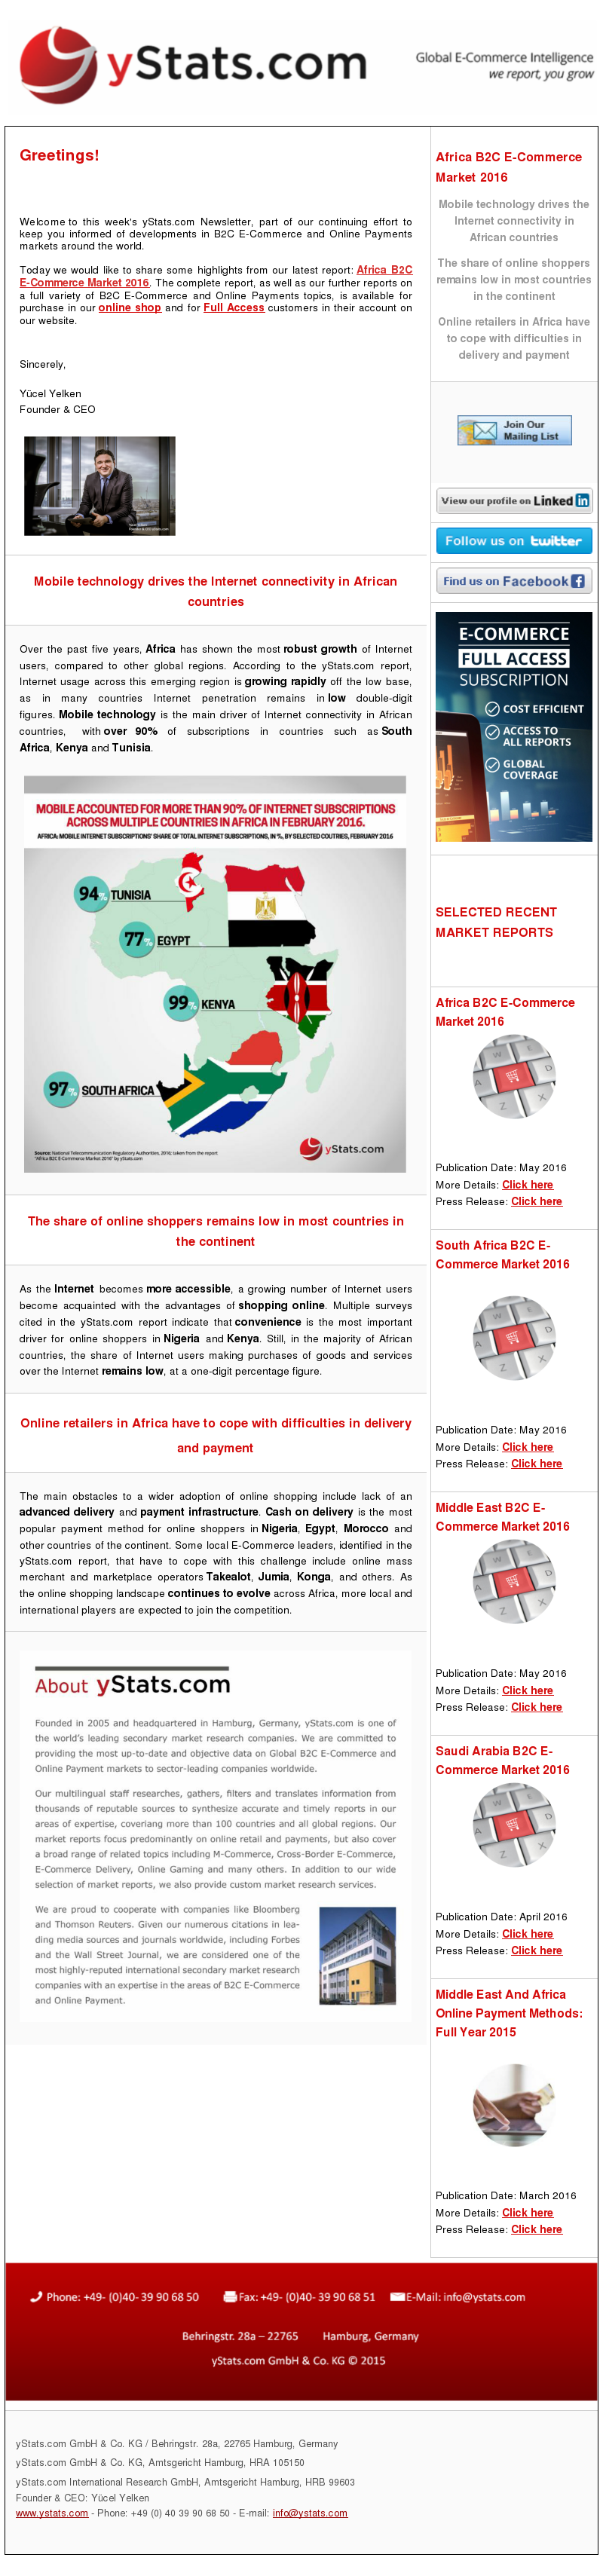 yStats.com Newsletter B2C E-Commerce Africa , Africa B2C E-Commerce Market 2016 , market size , online shoppers , retail sales , north Africa , ecommerce sales , internet penetration , emerging market , south Africa , Kenya , Tunisia , Egypt , Nigeria , online payment infrastructure , cash on delivery , morocco , takealot , jumia , konga , local ecommerce companies , global online retail companies , online shopping , internet retail sales , e-commerce competitors , international players , newsletter , 2016 Over the past five years, Africa has shown the most robust growth of Internet users, compared to other global regions. According to the yStats.com report, Internet usage across this emerging region is growing rapidly off the low base, as in many countries Internet penetration remains in low double-digit figures. Mobile technology is the main driver of Internet connectivity in African countries, with over 90% of subscriptions in countries such as South Africa, Kenya and Tunisia.  As the Internet becomes more accessible, a growing number of Internet users become acquainted with the advantages of shopping online. Multiple surveys cited in the yStats.com report indicate that convenience is the most important driver for online shoppers in Nigeria and Kenya. Still, in the majority of African countries, the share of Internet users making purchases of goods and services over the Internet remains low, at a one-digit percentage figure.  The main obstacles to a wider adoption of online shopping include lack of an advanced delivery and payment infrastructure. Cash on delivery is the most popular payment method for online shoppers in Nigeria, Egypt, Morocco and other countries of the continent. Some local E-Commerce leaders, identified in the yStats.com report, that have to cope with this challenge include online mass merchant and marketplace operators Takealot, Jumia, Konga, and others. As the online shopping landscape continues to evolve across Africa, more local and international players are expected to join the competition.